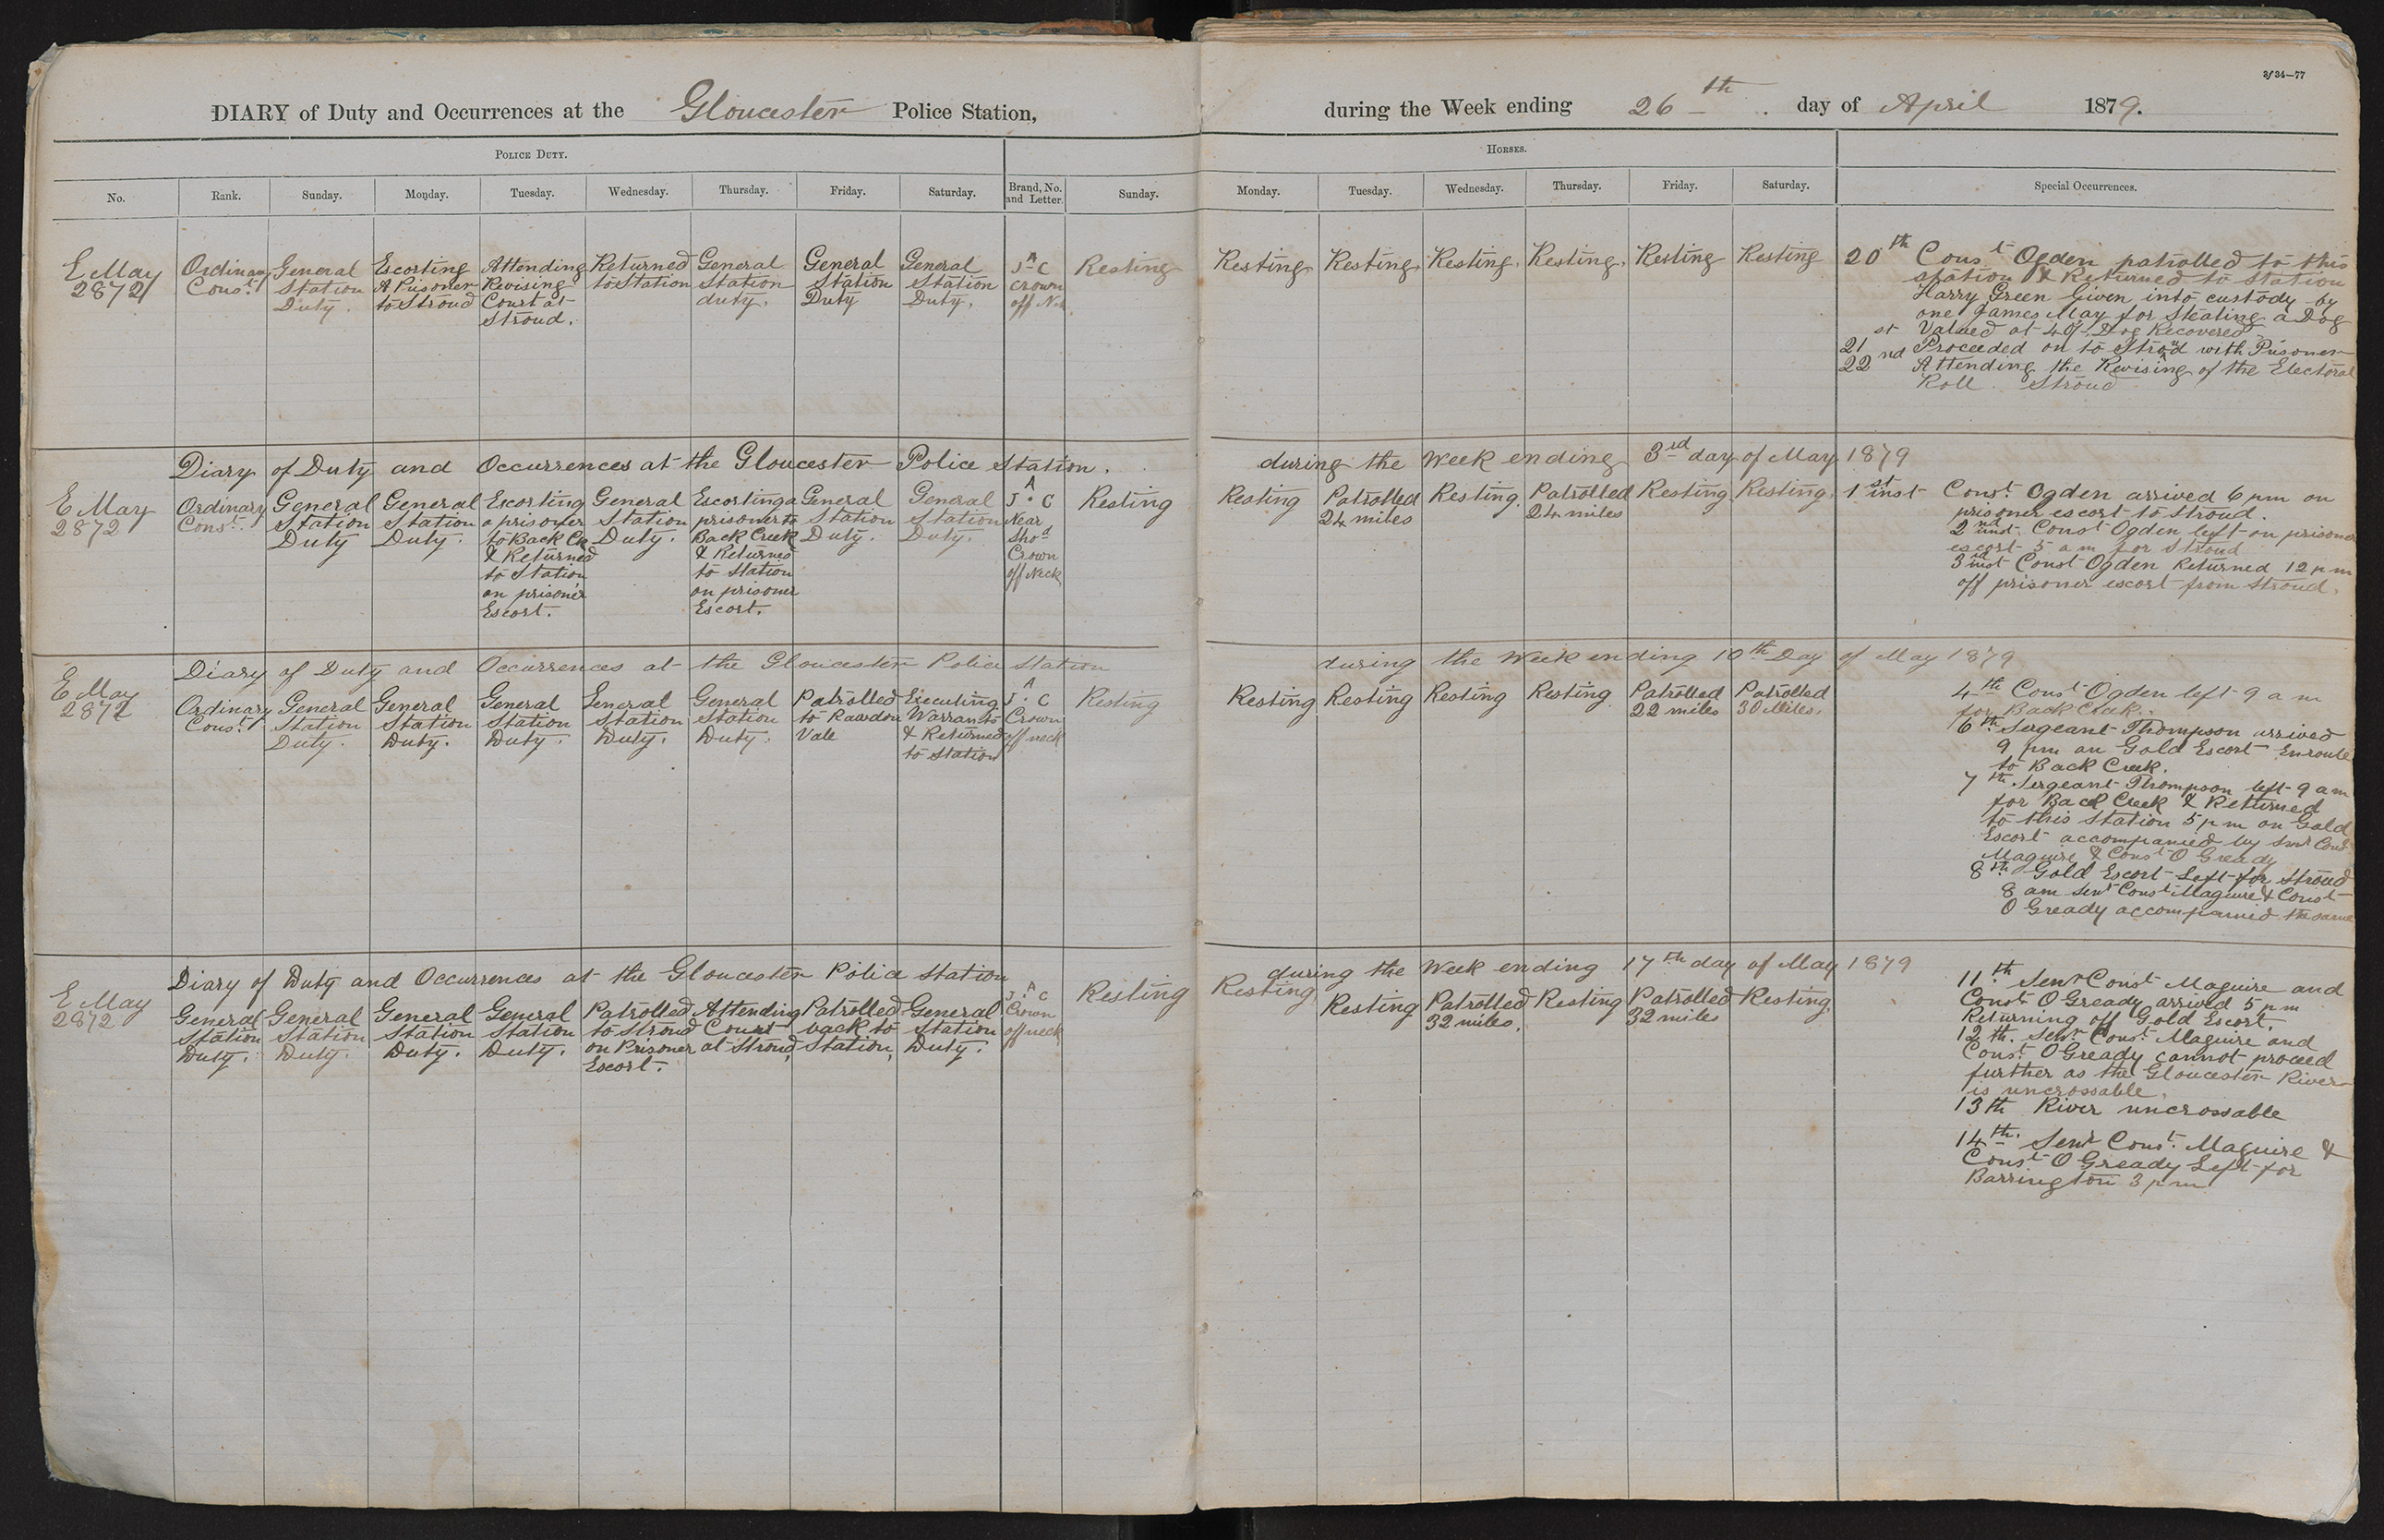 Diary of duty and occurrences at the Gloucester Police Station during the week ending the 26th day of April 1879